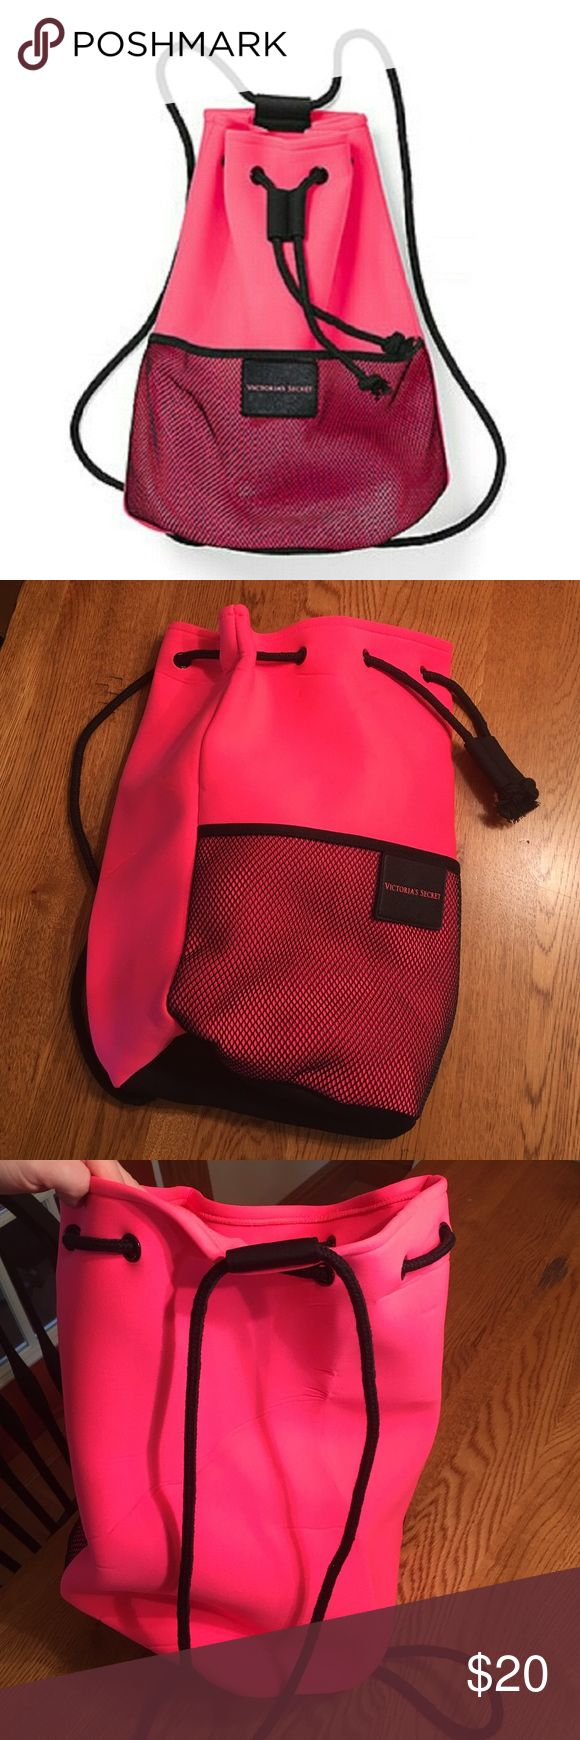 "Victoria's Secret neoprene drawstring backpack bag Brand new! Tags removed but never used. Cute sporty pink neoprene backpack with front mesh pocket and black drawstring cord. Perfect size for gym clothes beach essentials. 17"" x 9"" x 9"" Victoria's Secret Bags Totes"